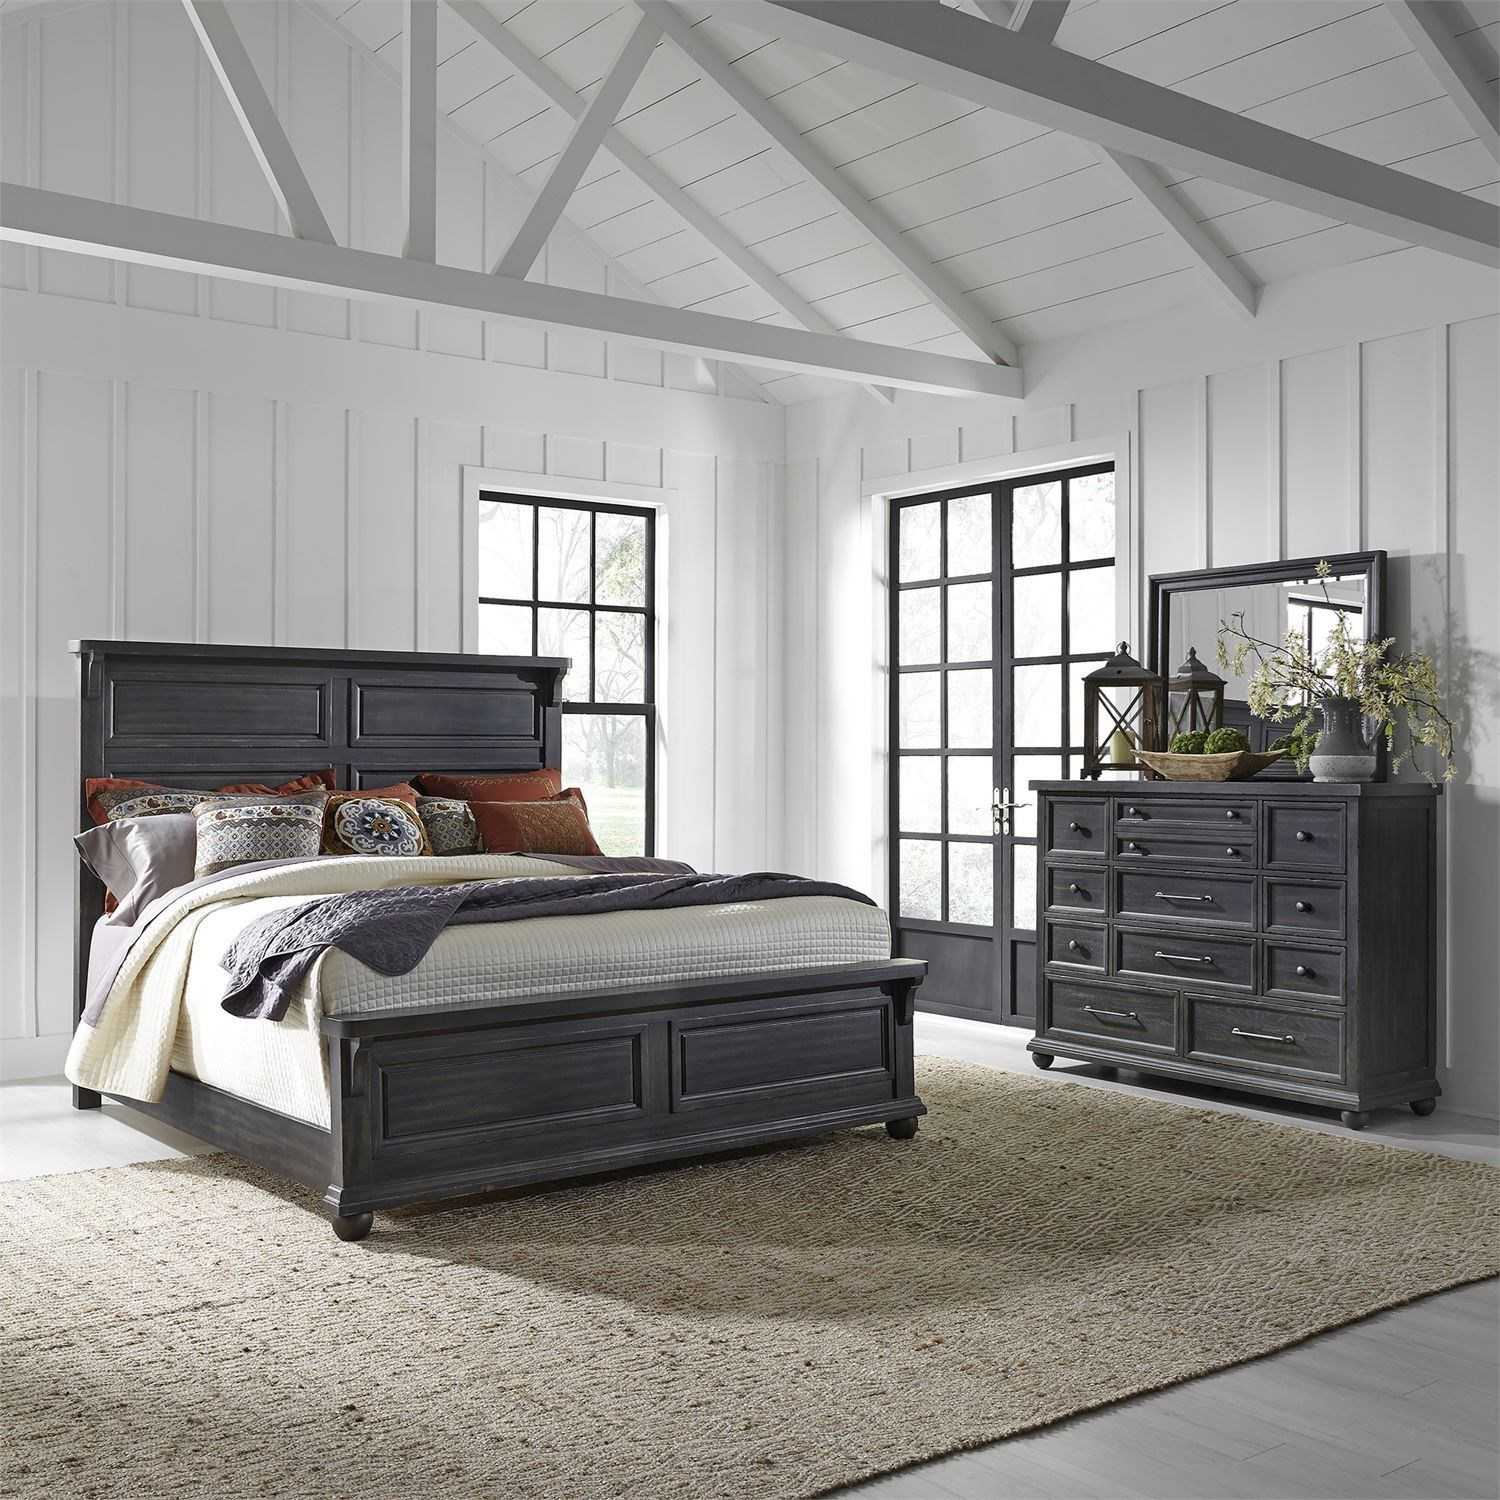 Harvest Home Queen Bedroom Group by Libby at Walker's Furniture